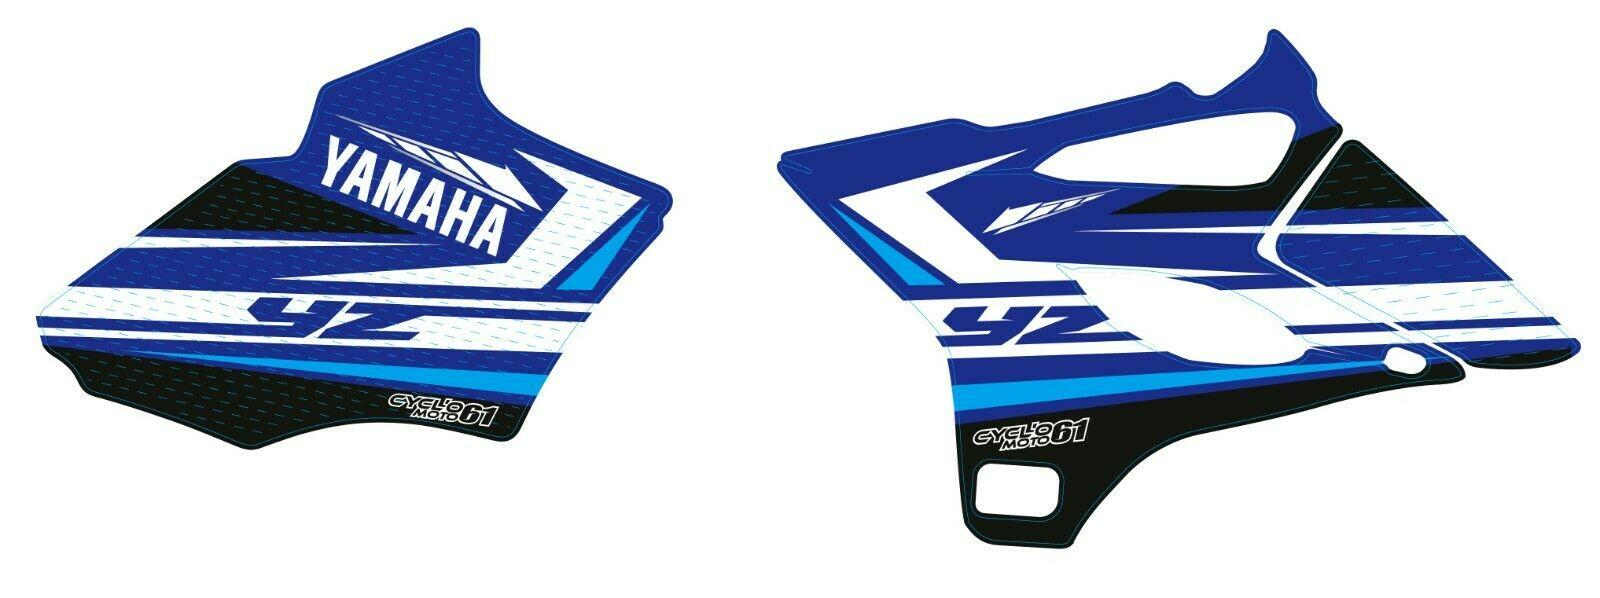 Ouies 85yz